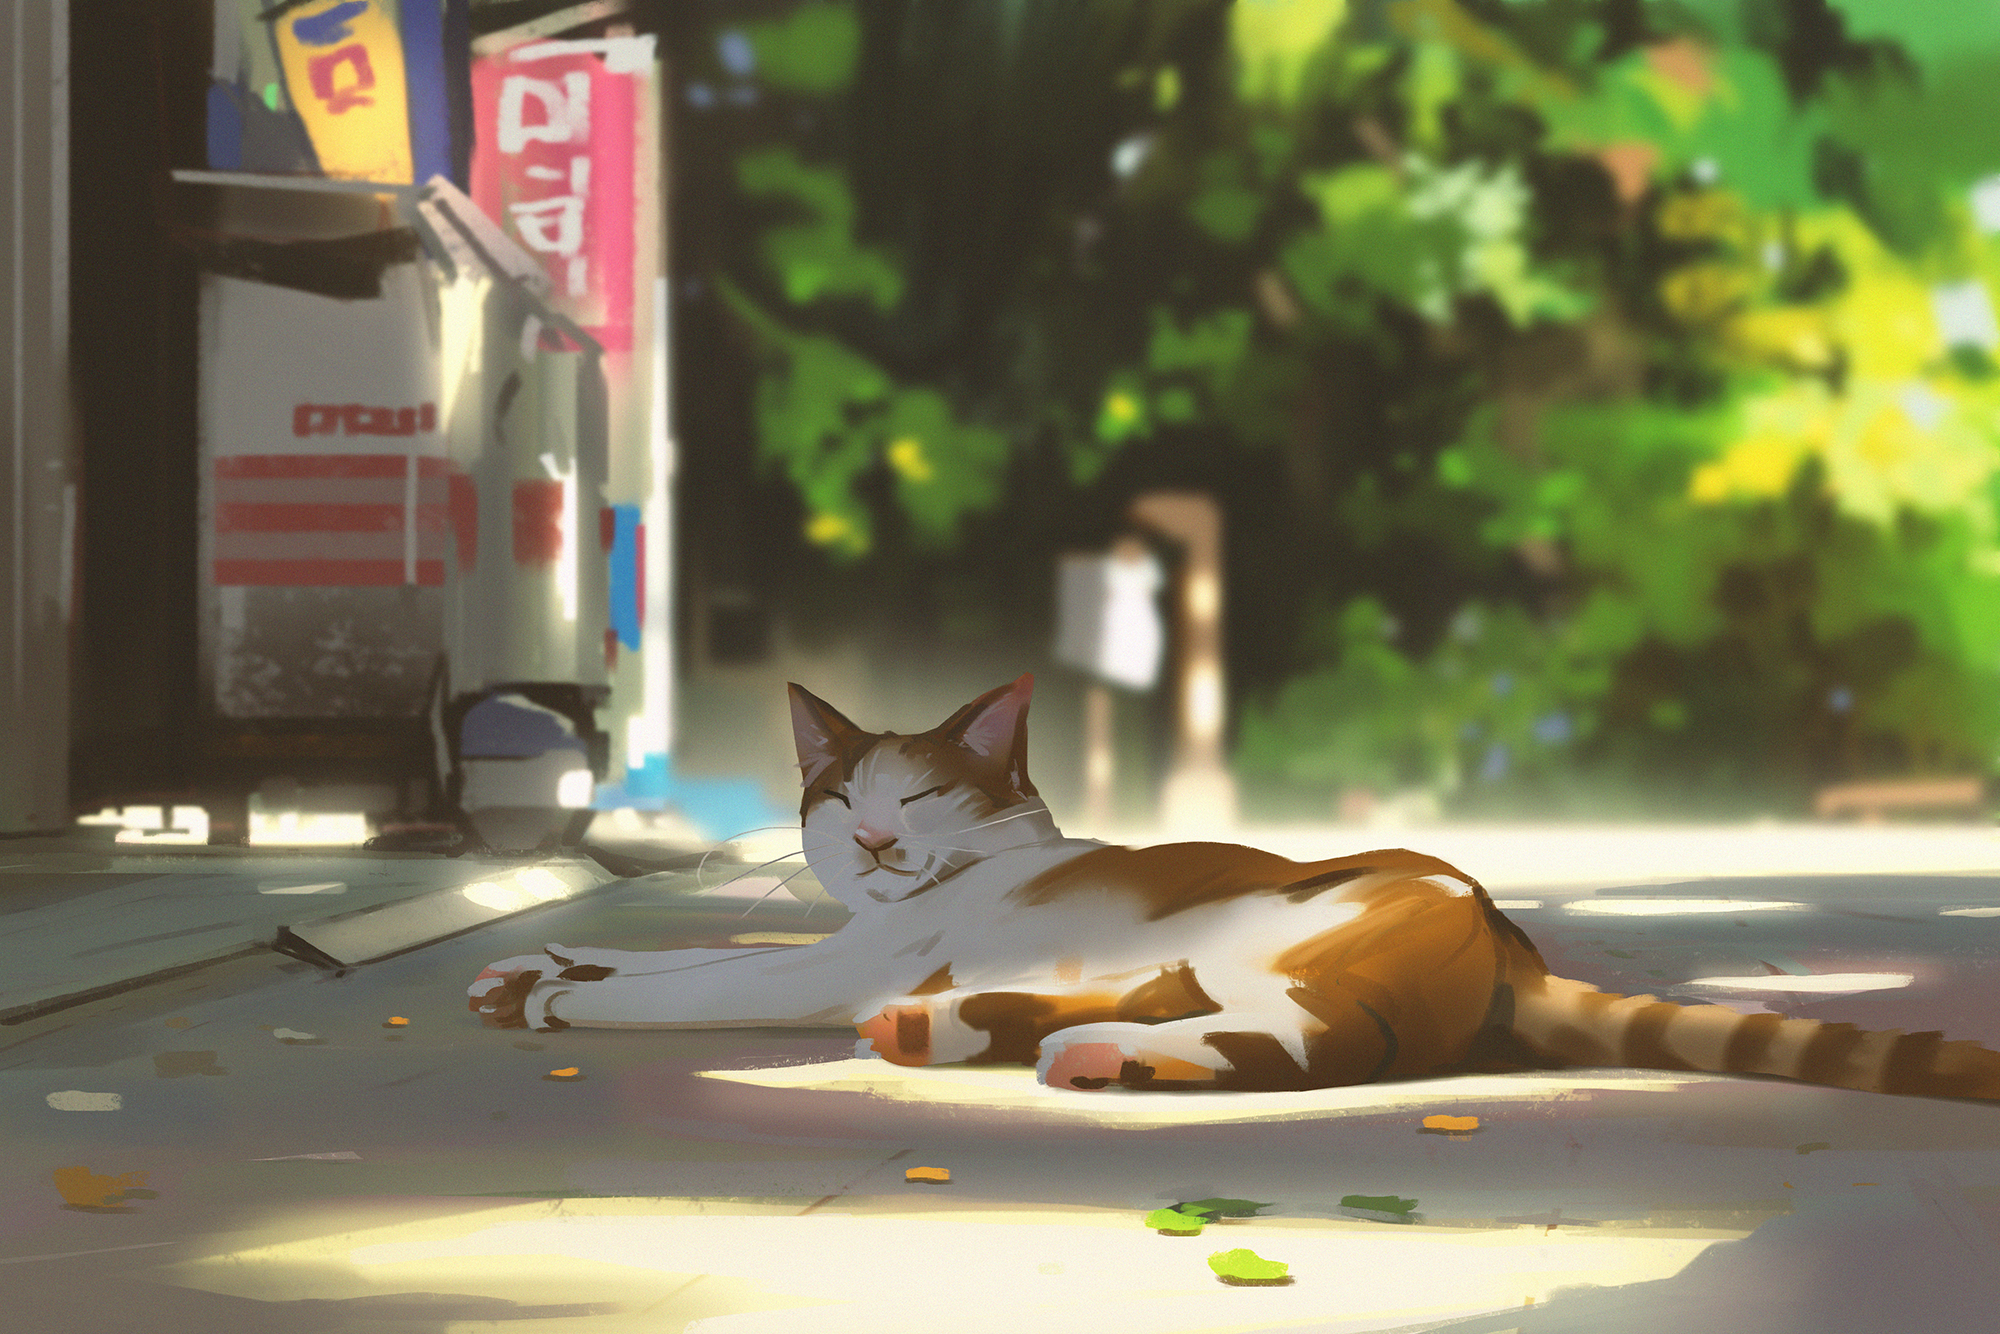 General 2000x1334 cats animals street depth of field outdoors artwork digital art digital painting illustration Atey Ghailan